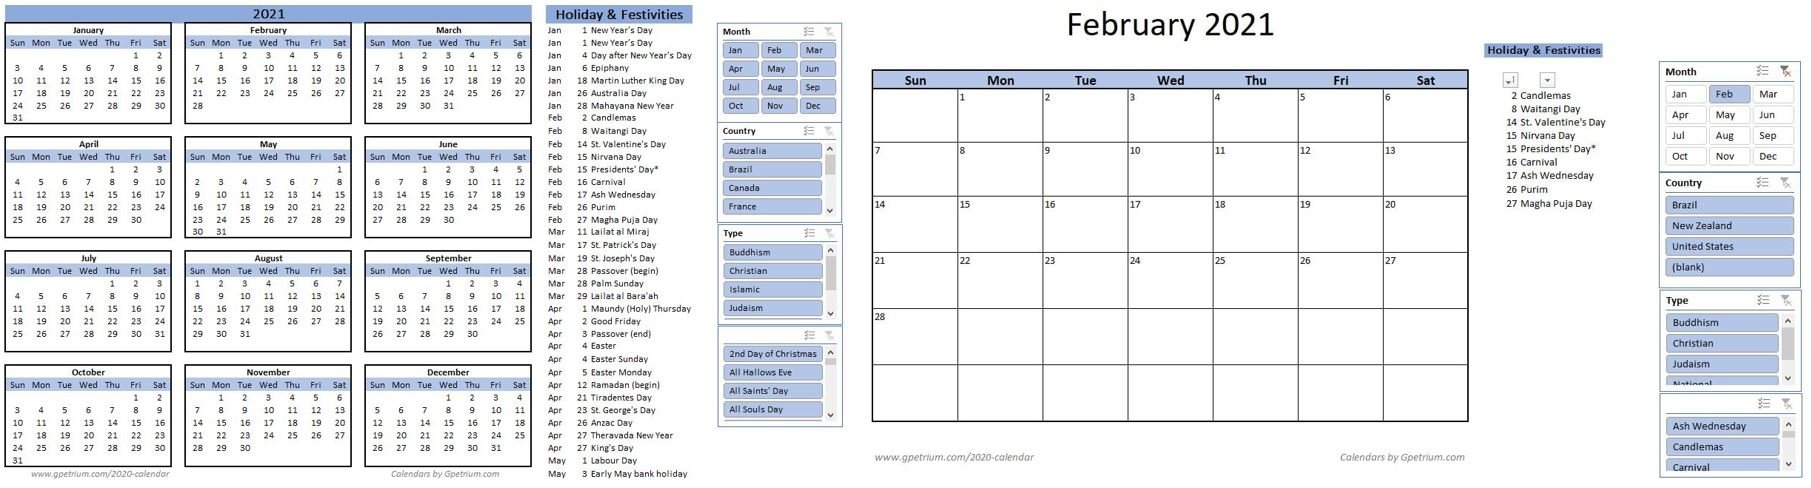 Free 2021 Calendar Template In Excel  Gpetrium within Important Awarness Dates 2021 Australia